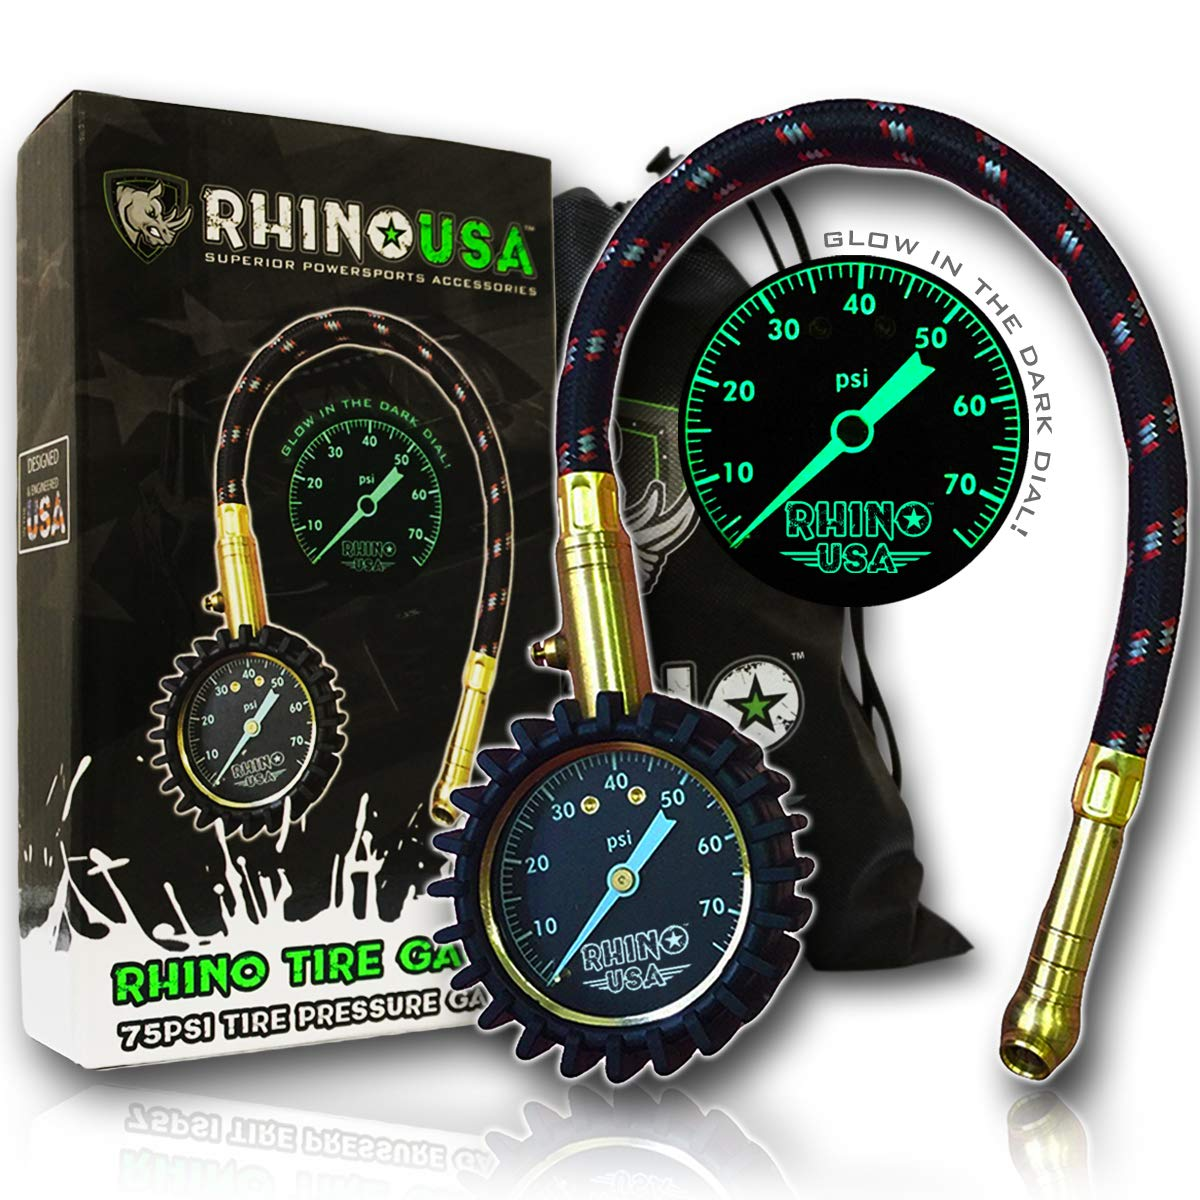 Rhino USA Heavy Duty Tire Pressure Gauge (0-75 PSI) - Certified ANSI B40.1 Accurate, Large 2 inch Easy Read Glow Dial, Premium Braided Hose, Solid Brass Hardware, Best for Any Car, Truck, Motorcycle by Rhino USA